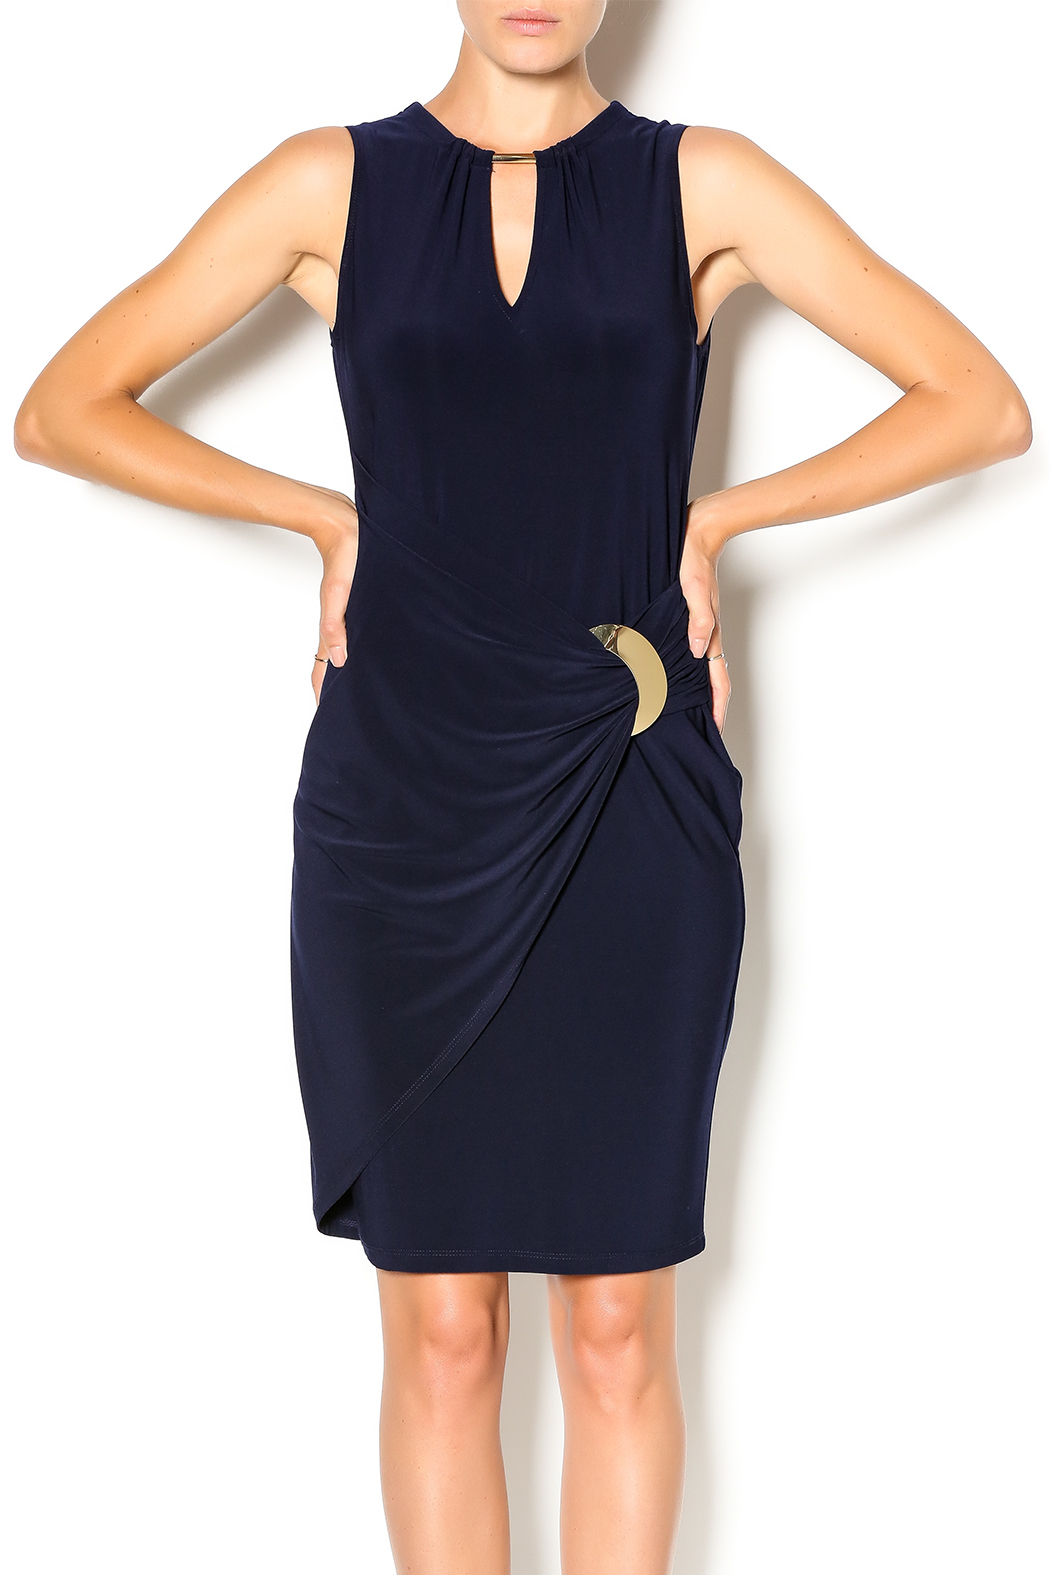 17075e7915 Joseph Ribkoff Navy Dress from New Jersey by Sabine s Boutique ...